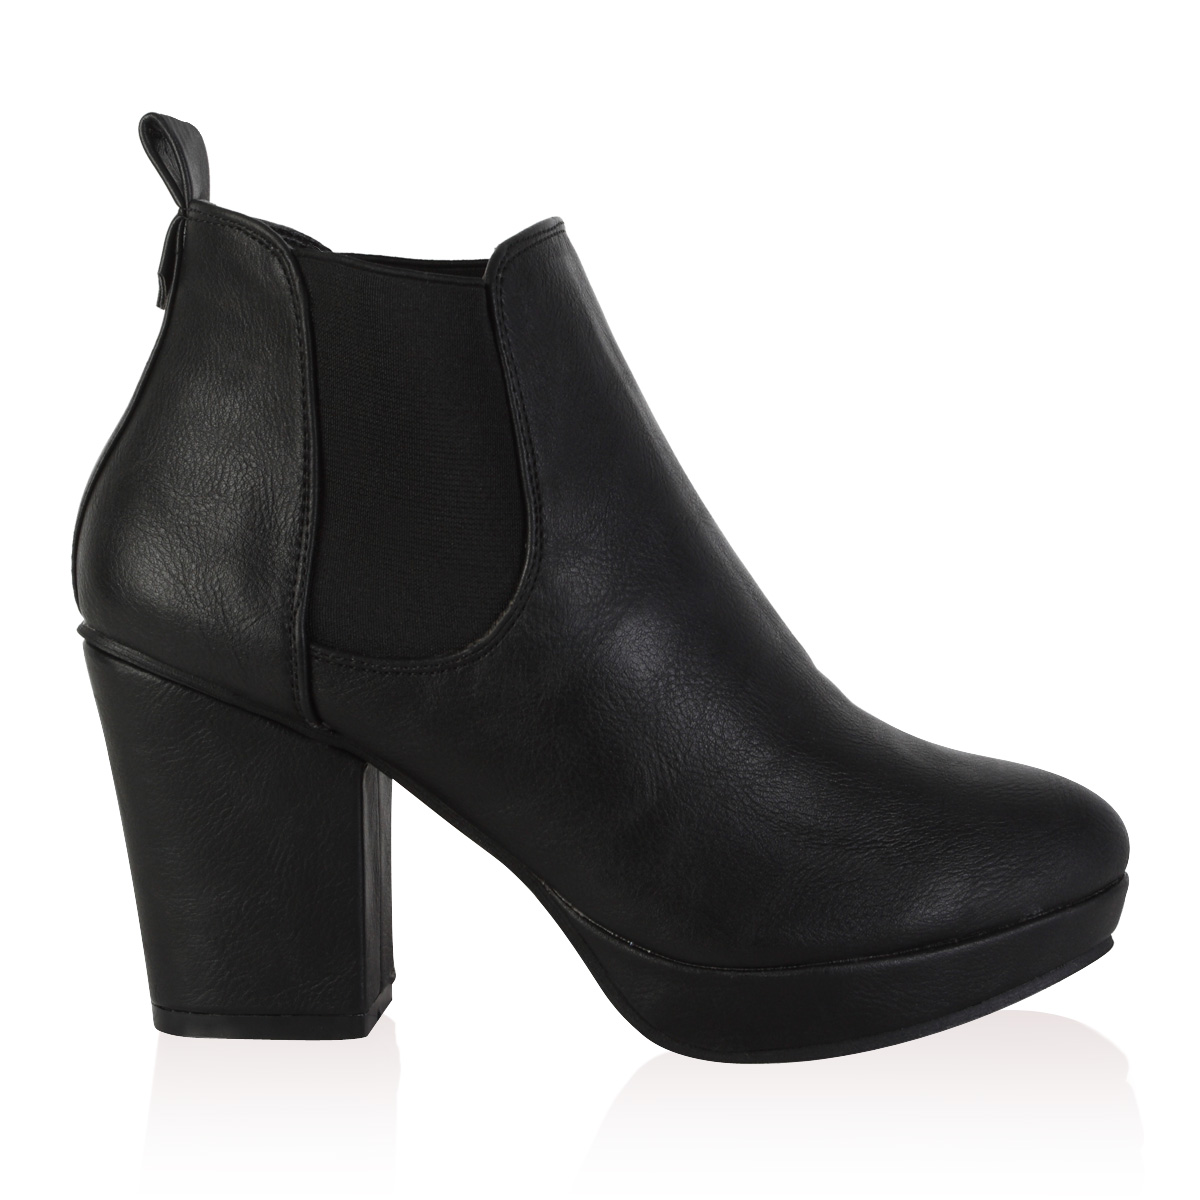 98c bottines chelsea pour femme plateforme talon carre chaussures taille 36 41 ebay. Black Bedroom Furniture Sets. Home Design Ideas